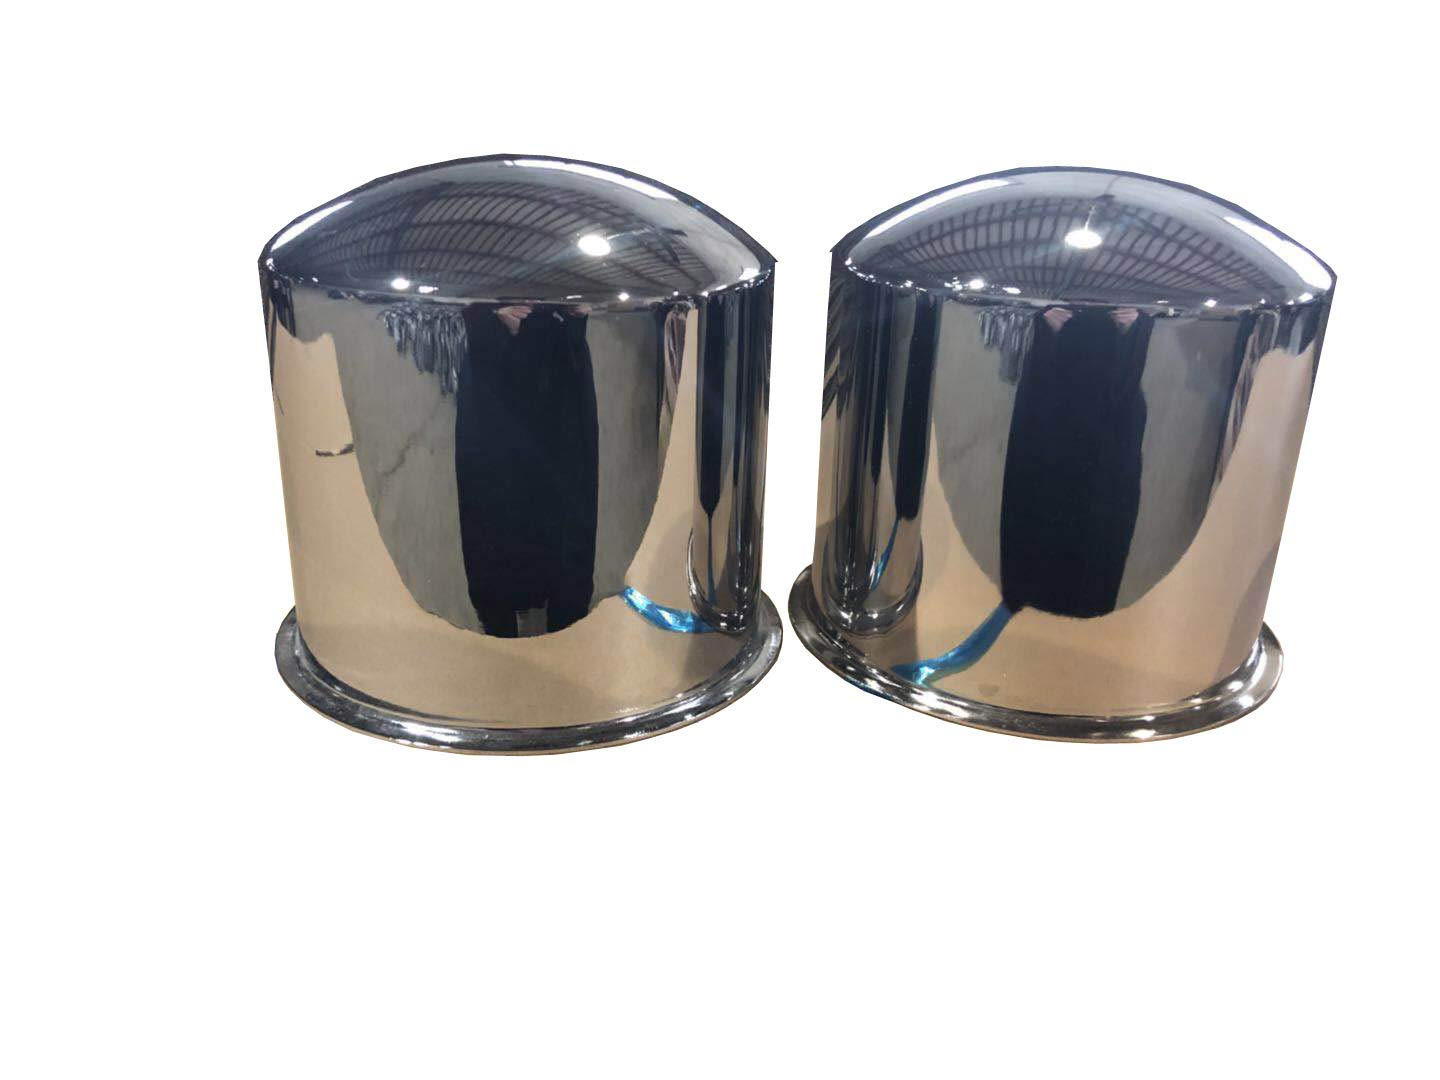 ZXLY ONE Set of 4pcs Chrome Metal Axle Covers for 8 x 6.5(165.1mm) by ZXLY (Image #1)